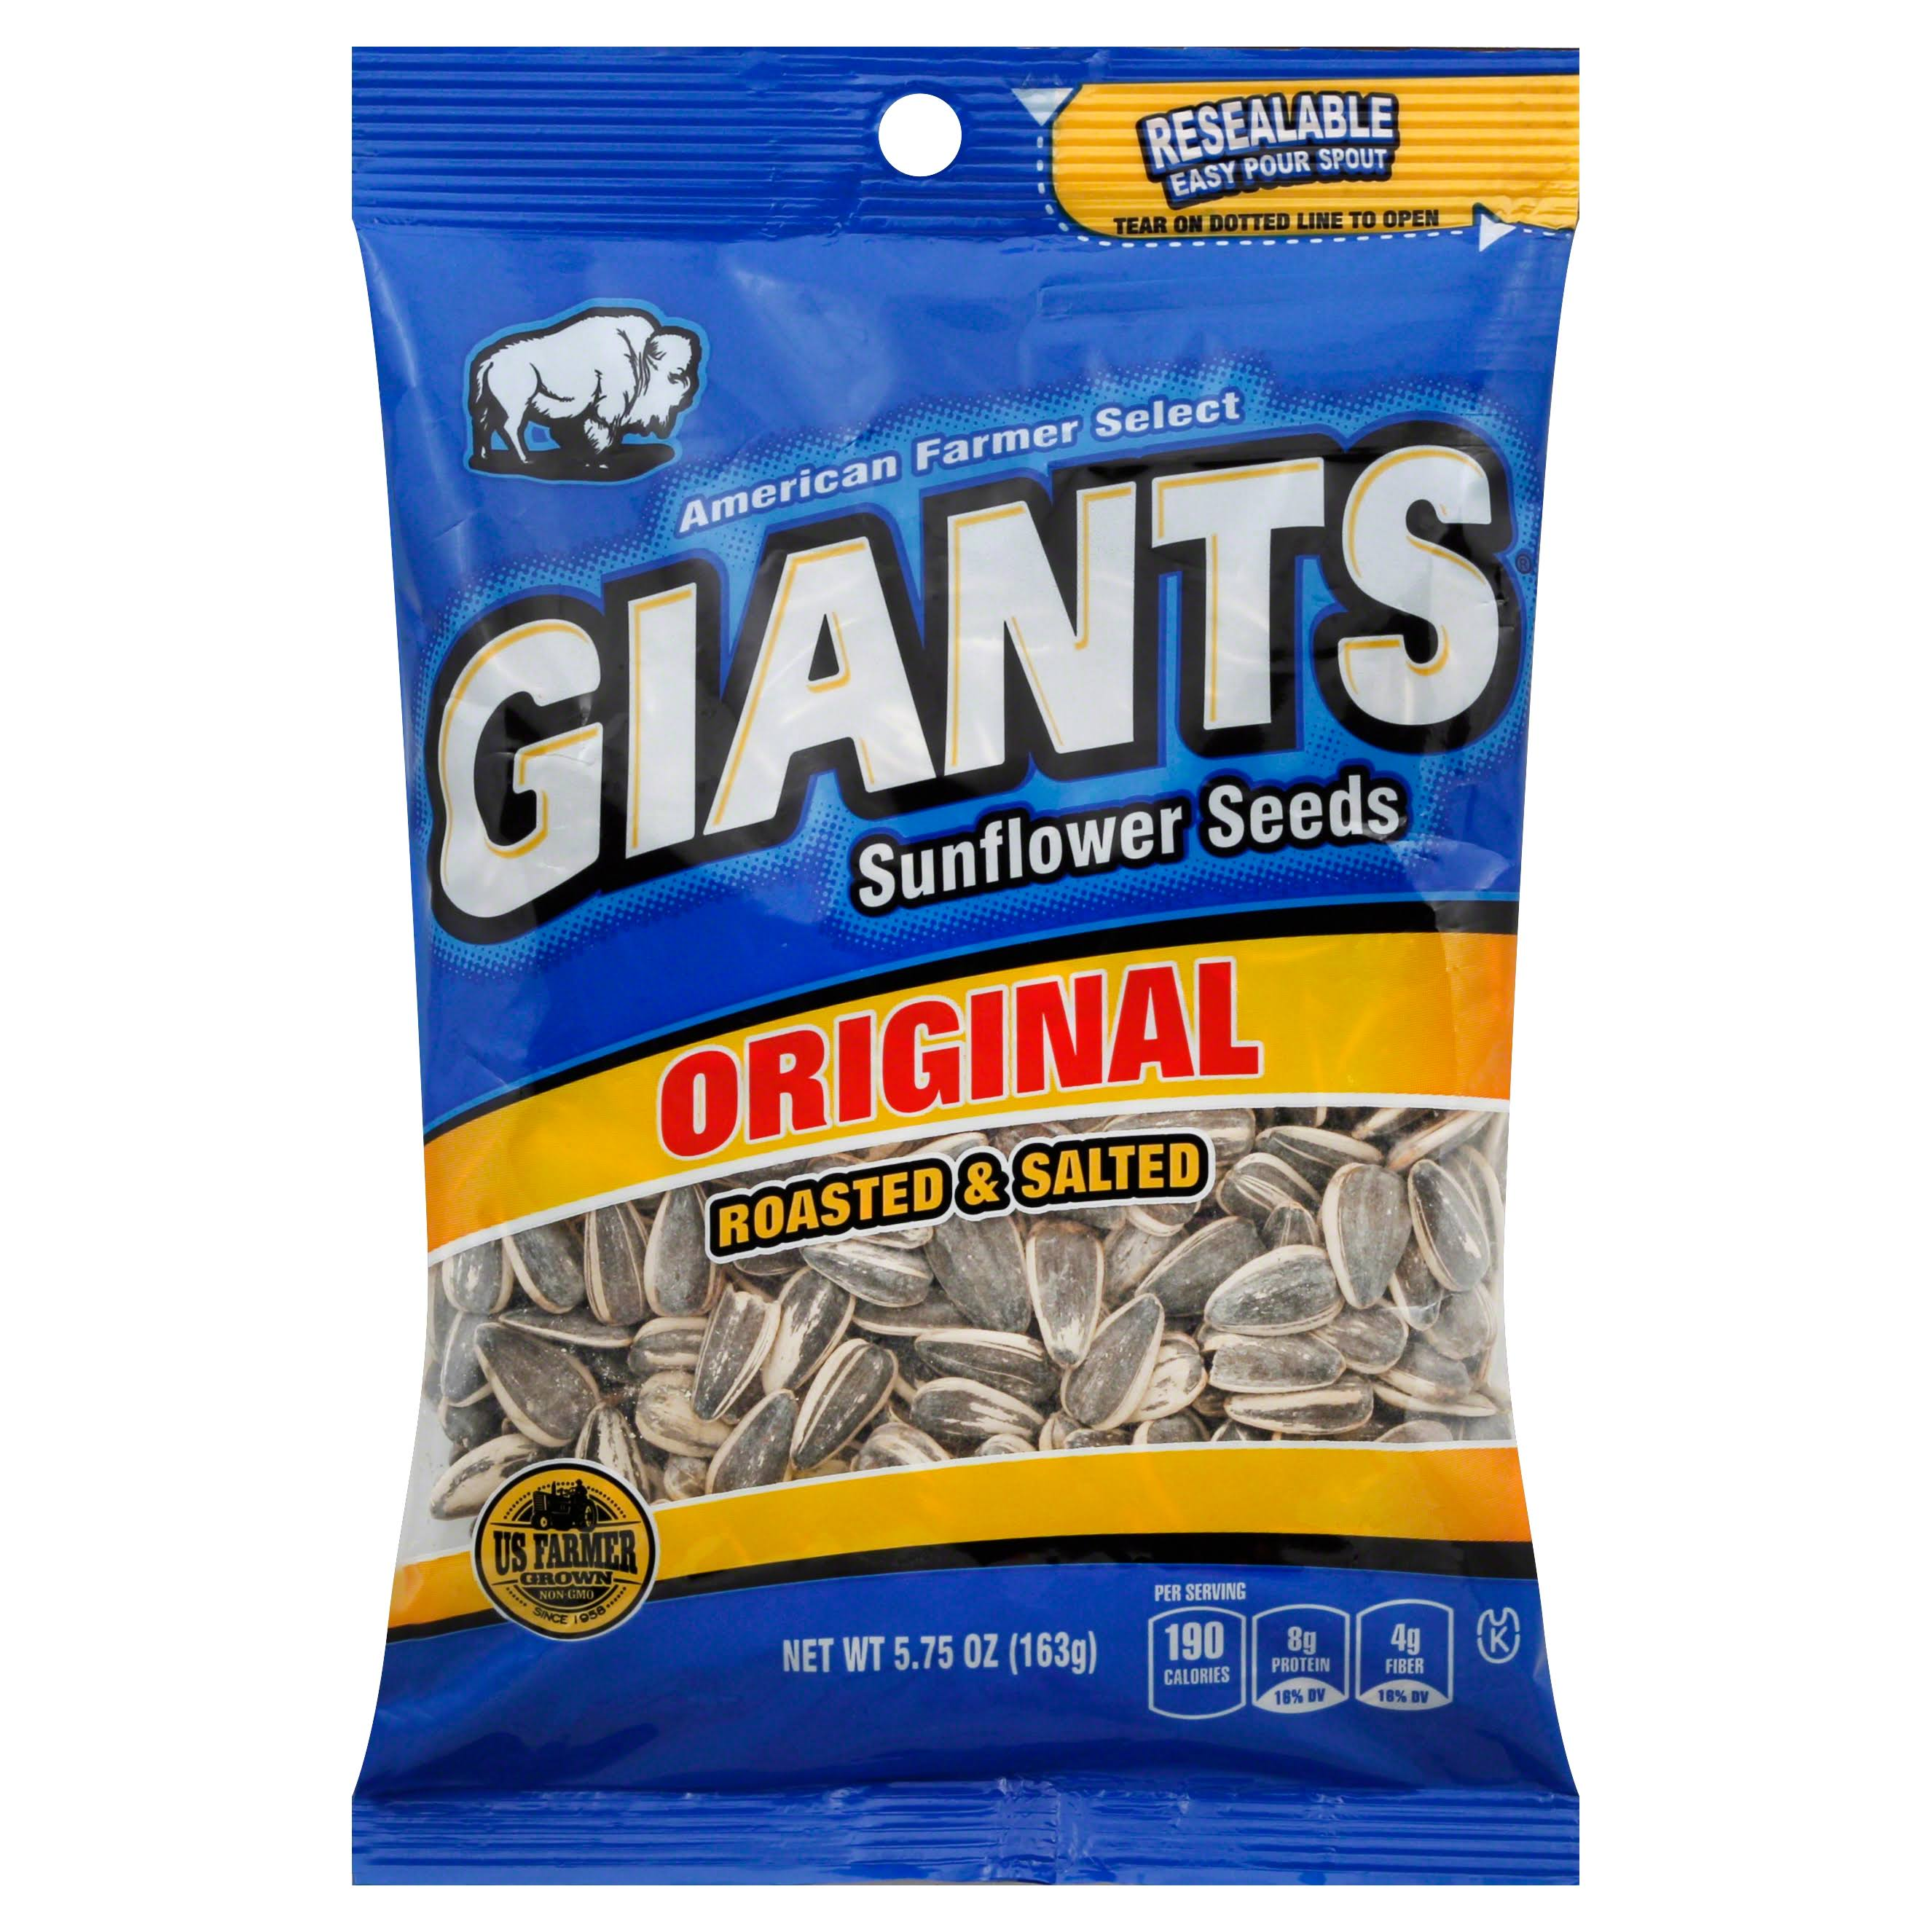 Giants Sunflower Seeds - Roasted & Salted, Original, 163g